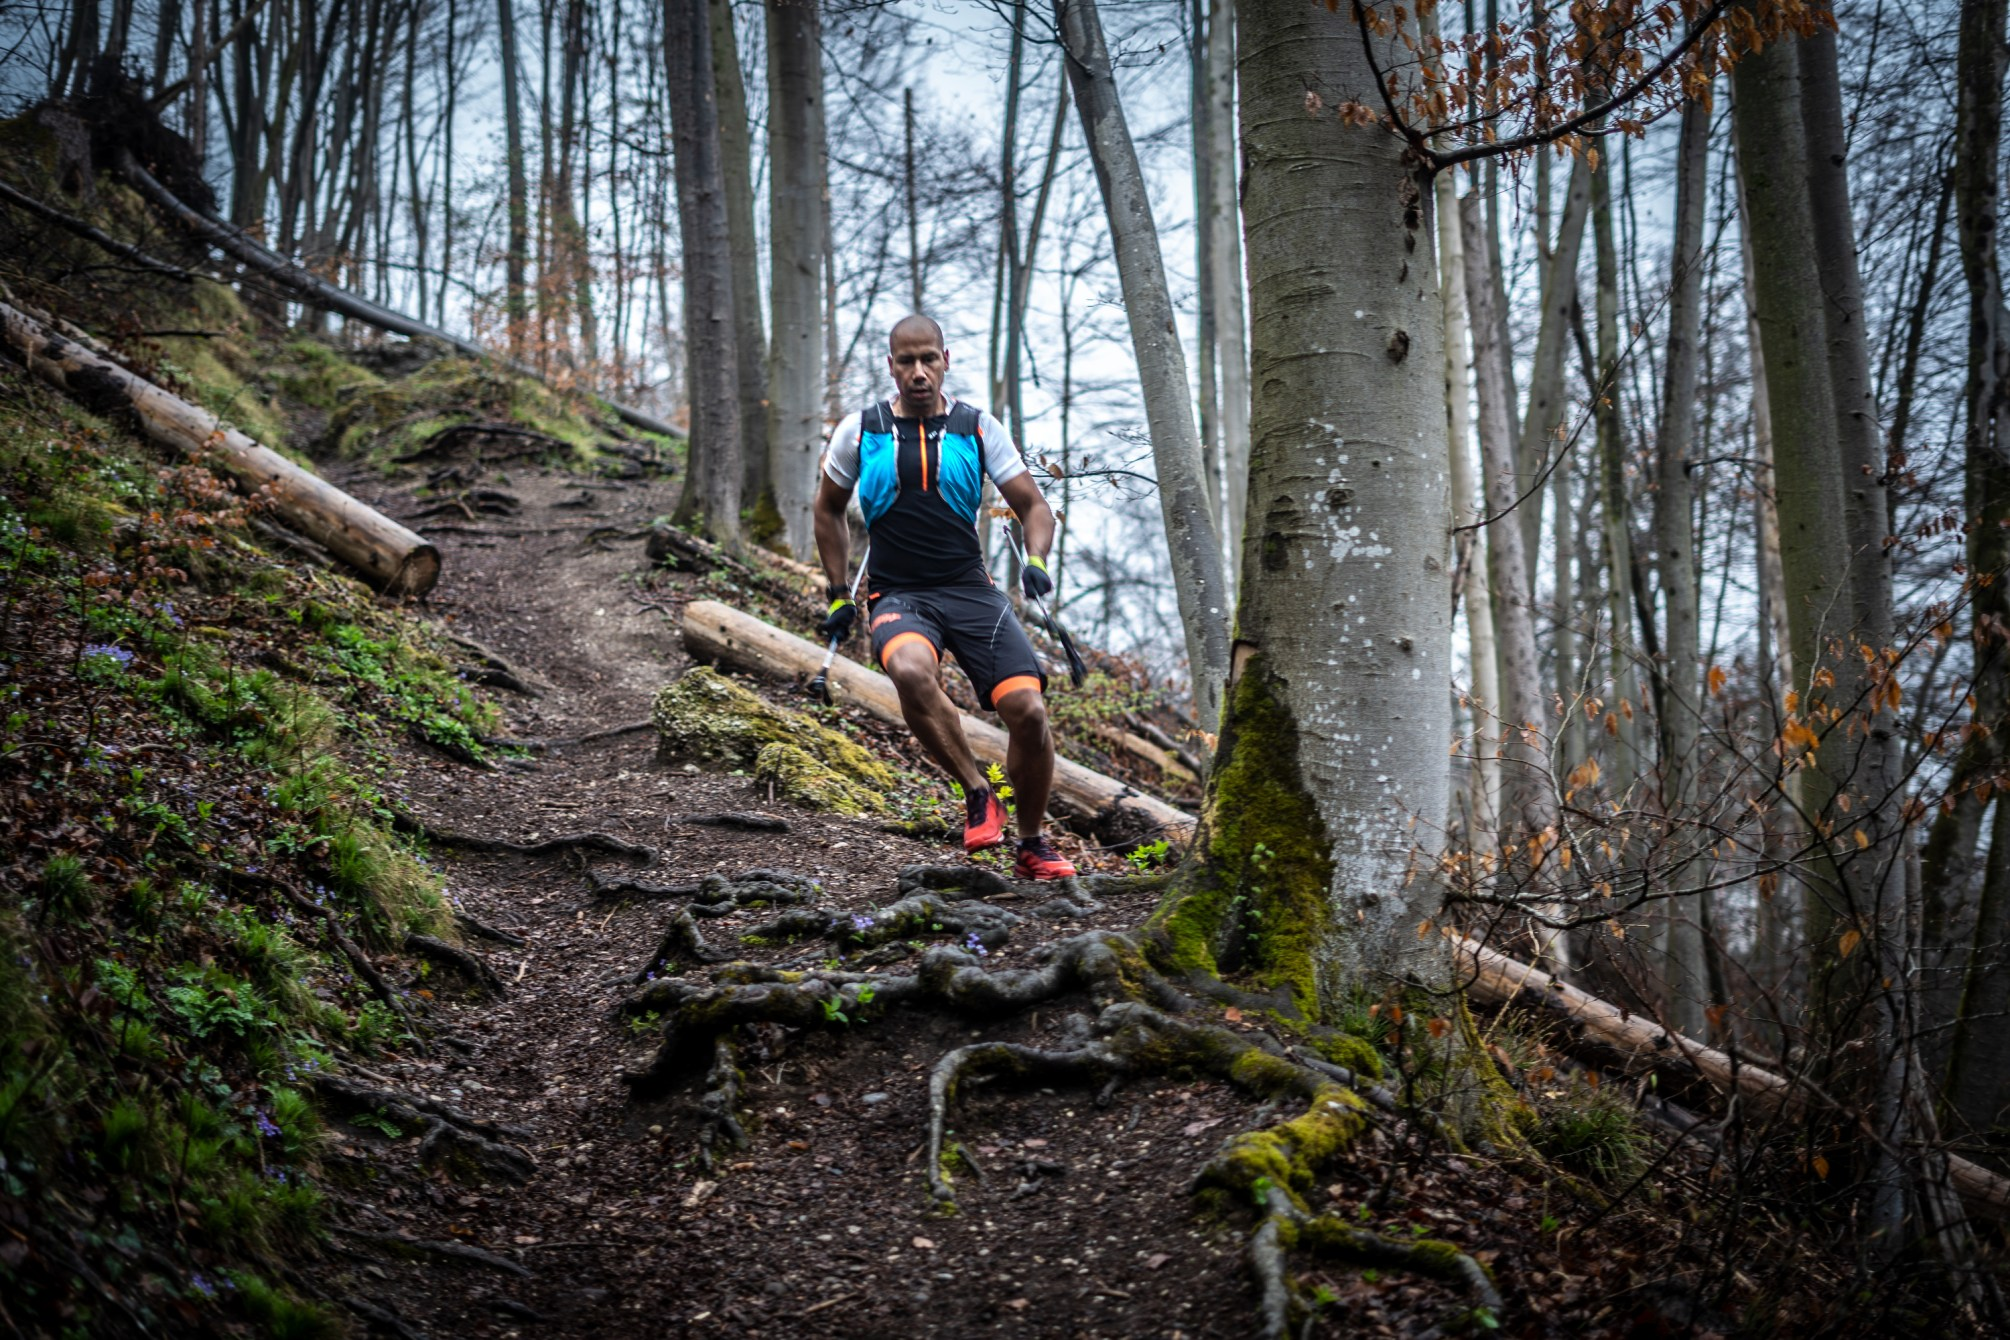 Leo im Trail Trailrunning Shooting